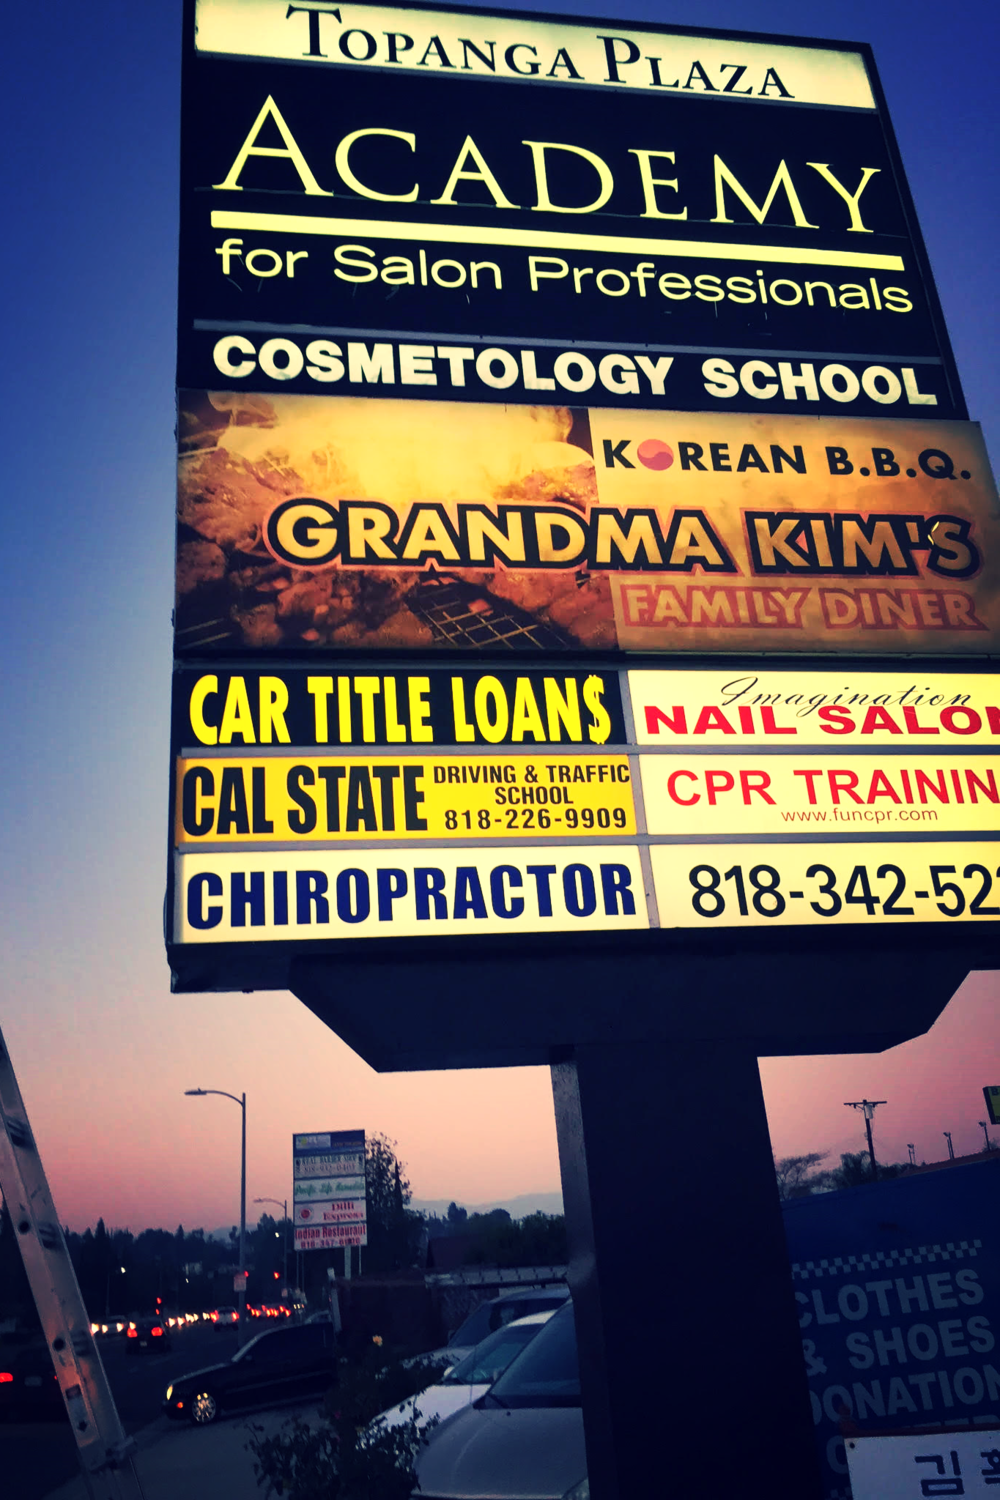 CarTitleLoans_PylonSigns_PremiumSignSolutions_CanogaPark